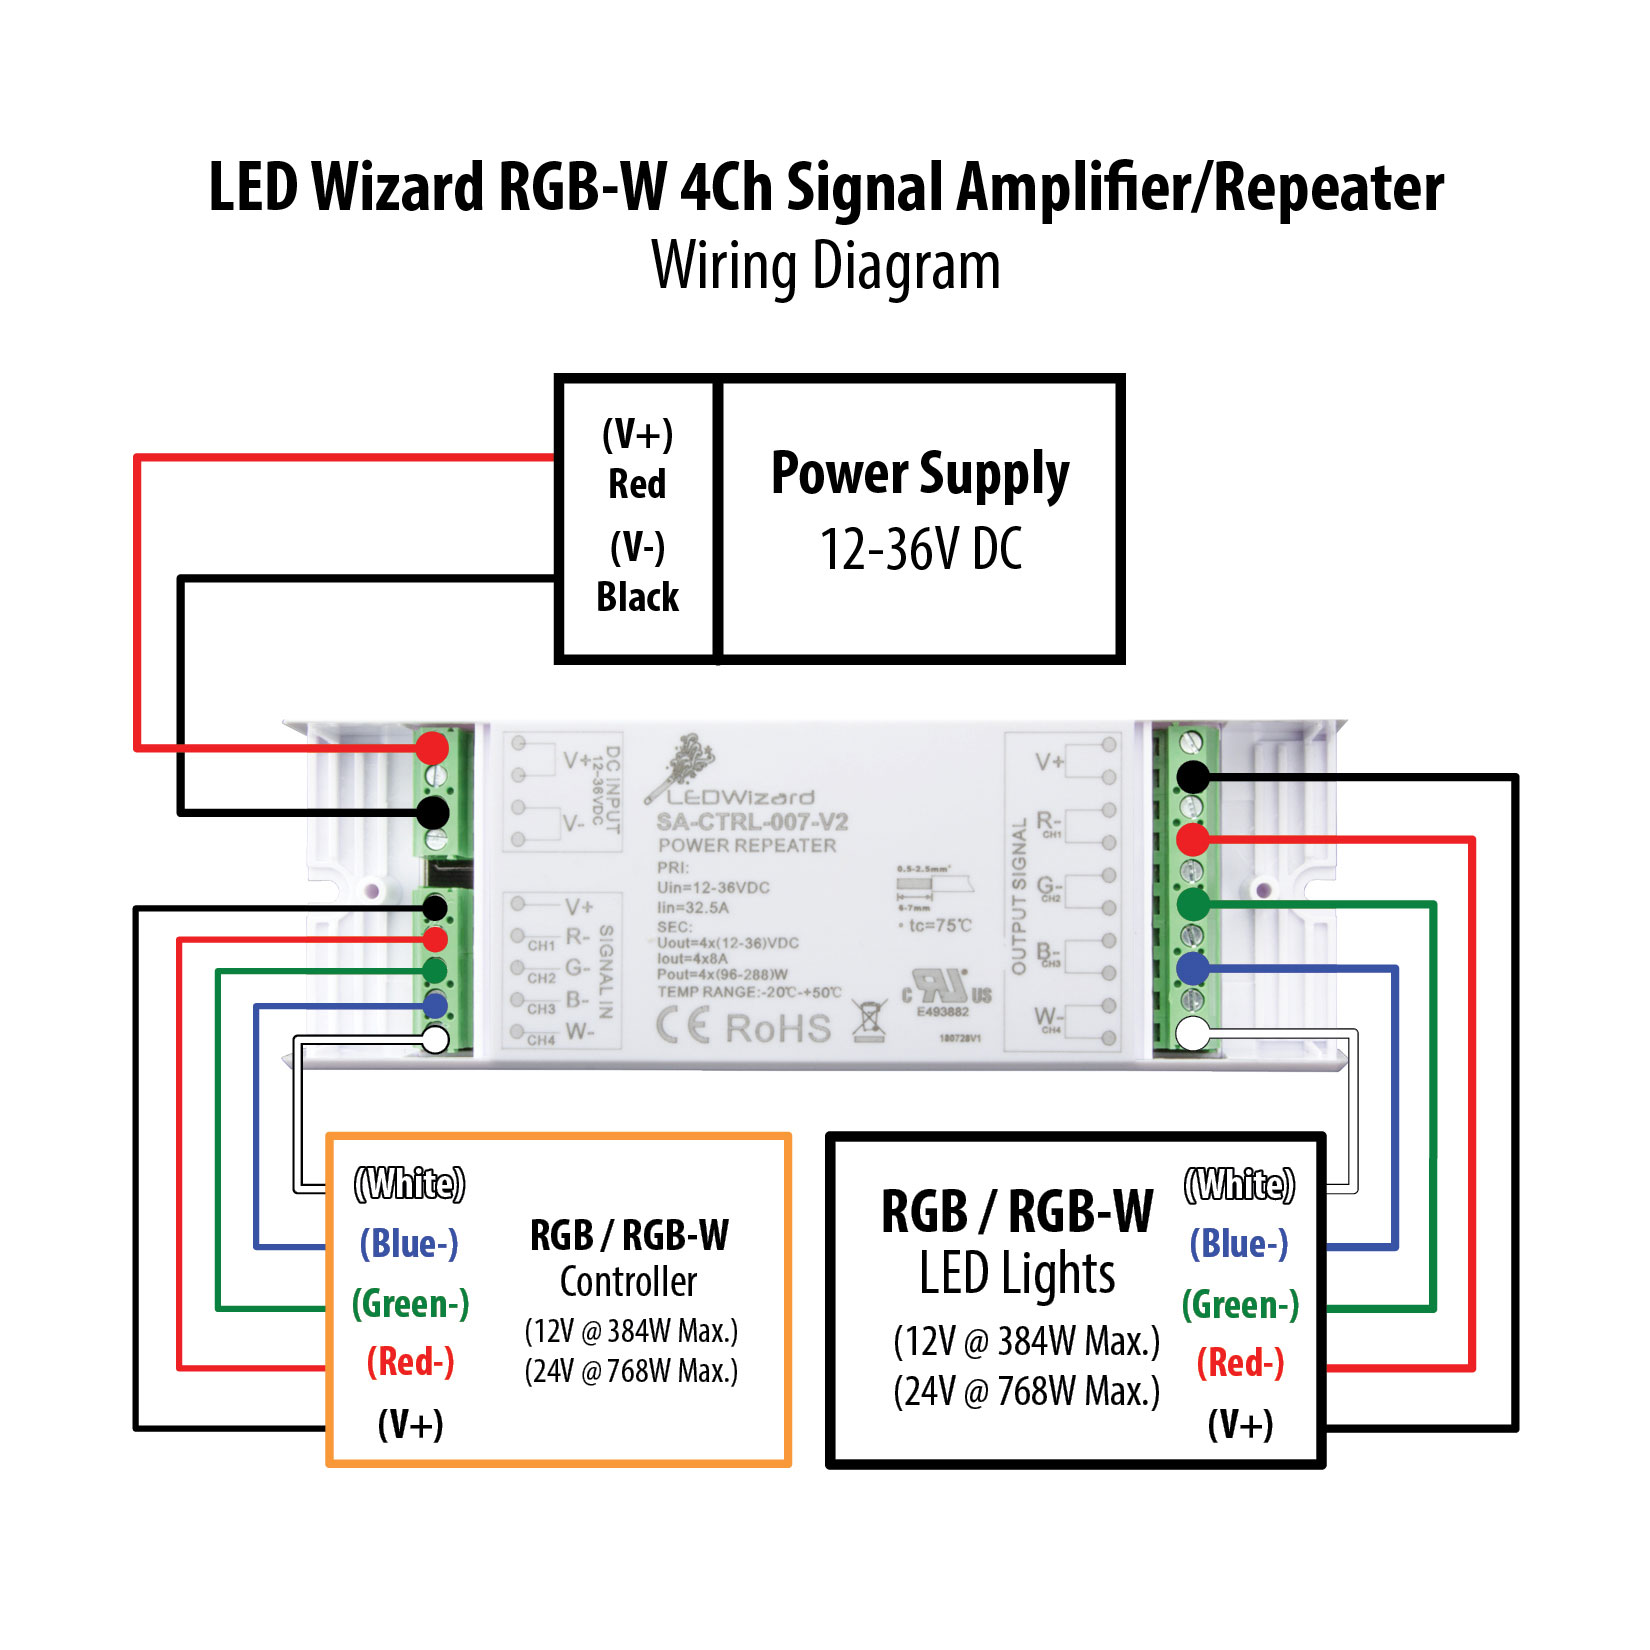 hight resolution of  rgb wiring diagram led wizard rgb signal amplifier repeater